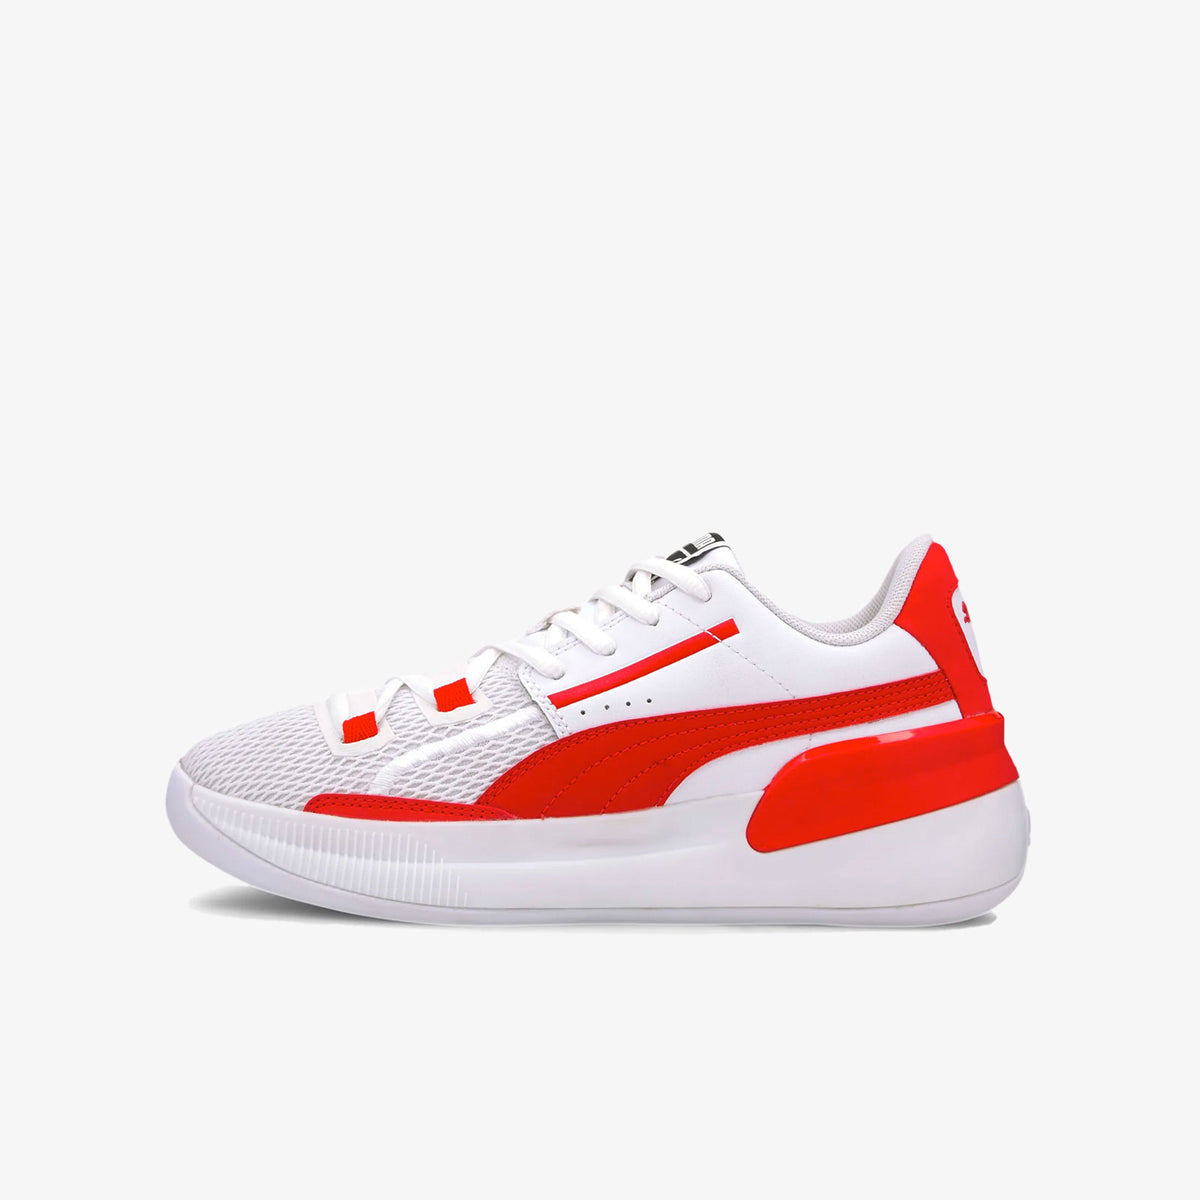 Clyde Hardwood Team Junior - White/High Red